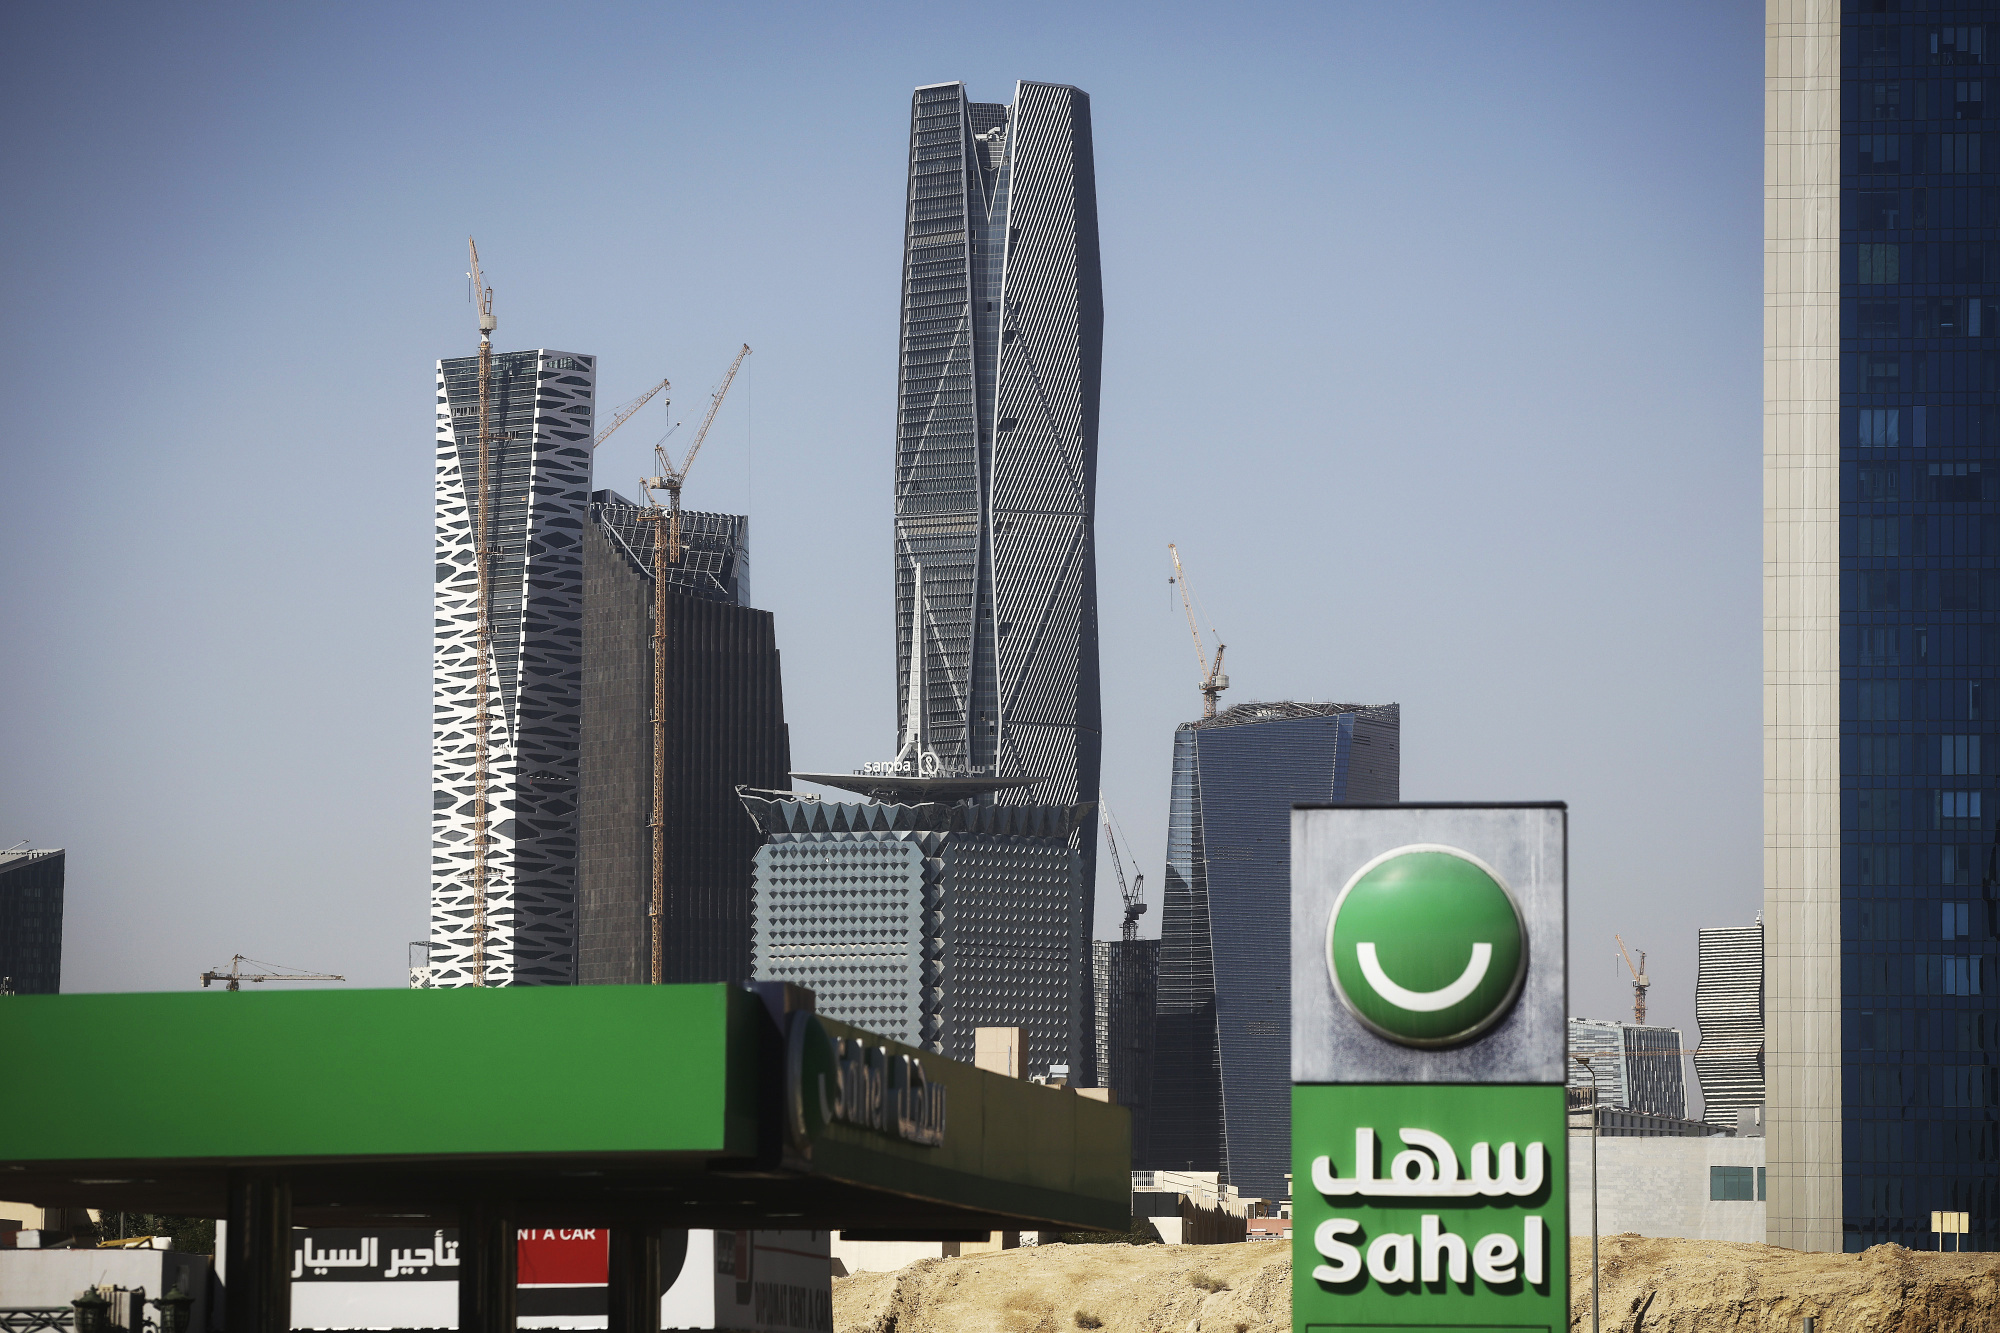 A Sahel petrol station, operated by Tas'helat Marketing Co Ltd., stands in front of buildings under construction including offices, apartments, hotels, conference centres, mosque and entertainment venues, at the King Abdullah Financial District (KAFD)in Riyadh, Saudi Arabia, on Thursday, Dec. 1, 2016. The King Abdullah Financial District, known as the KAFD and about 70 percent complete, has been beset by construction delays since work began in the Saudi capital in 2006. Photographer: Simon Dawson/Bloomberg